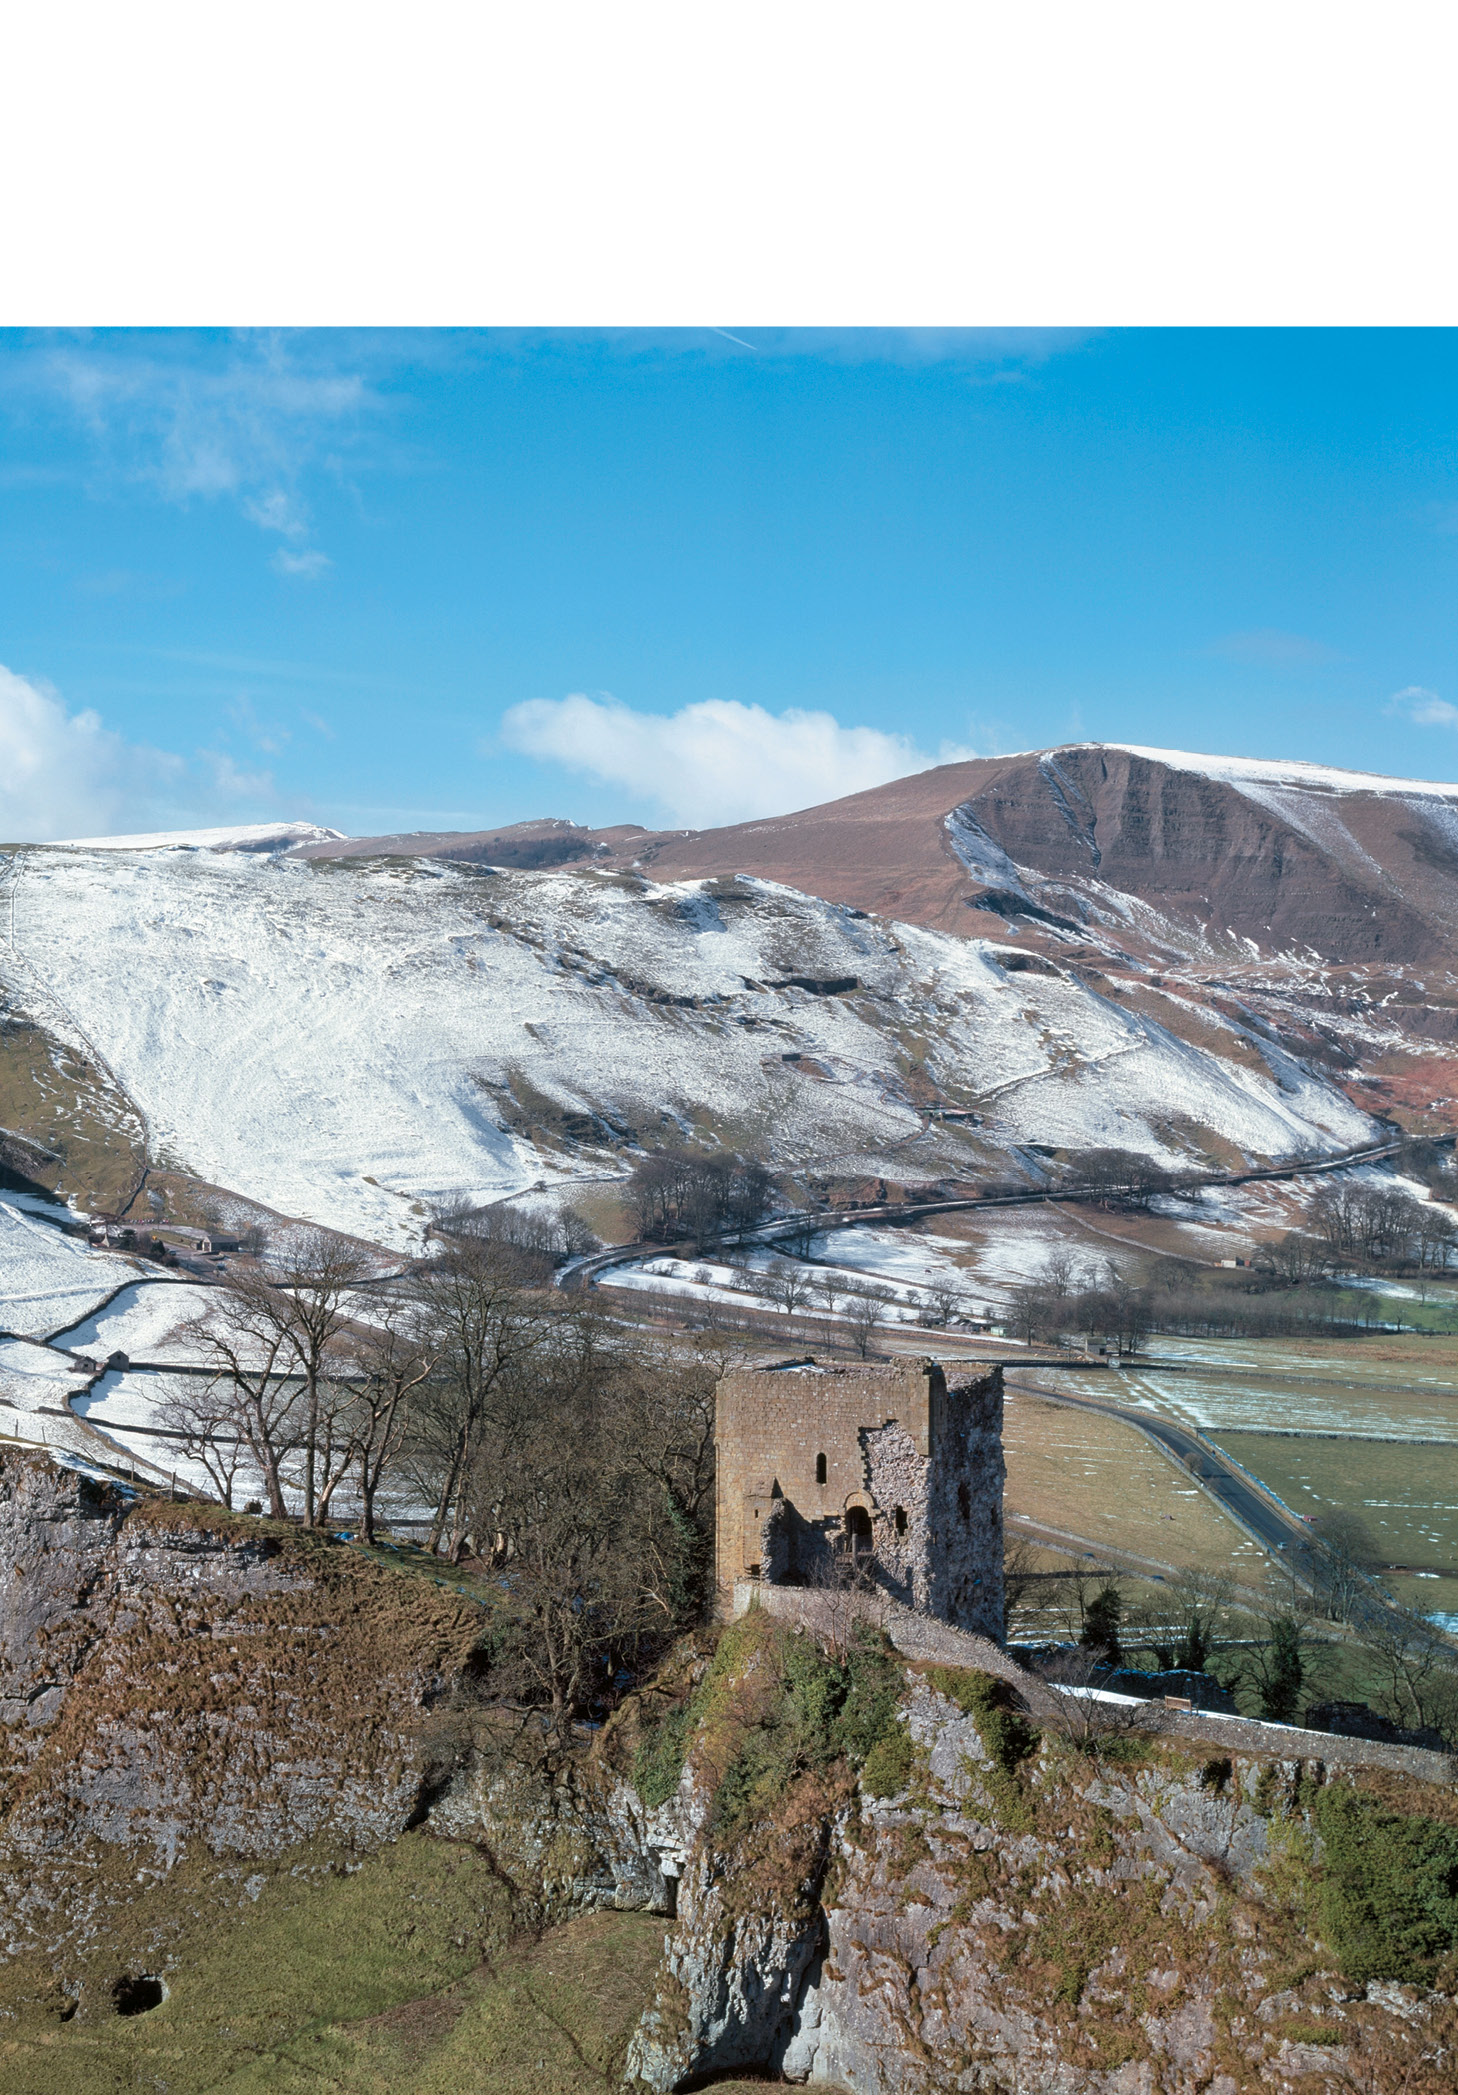 Peveril Castle, Derbyshire. Built by Henry II in 1175-1177, it looks like a classic Medieval stronghold, but we know that its functions were largely bureaucratic, combining tax collection with the administration of the royal forest and its hunting grounds.